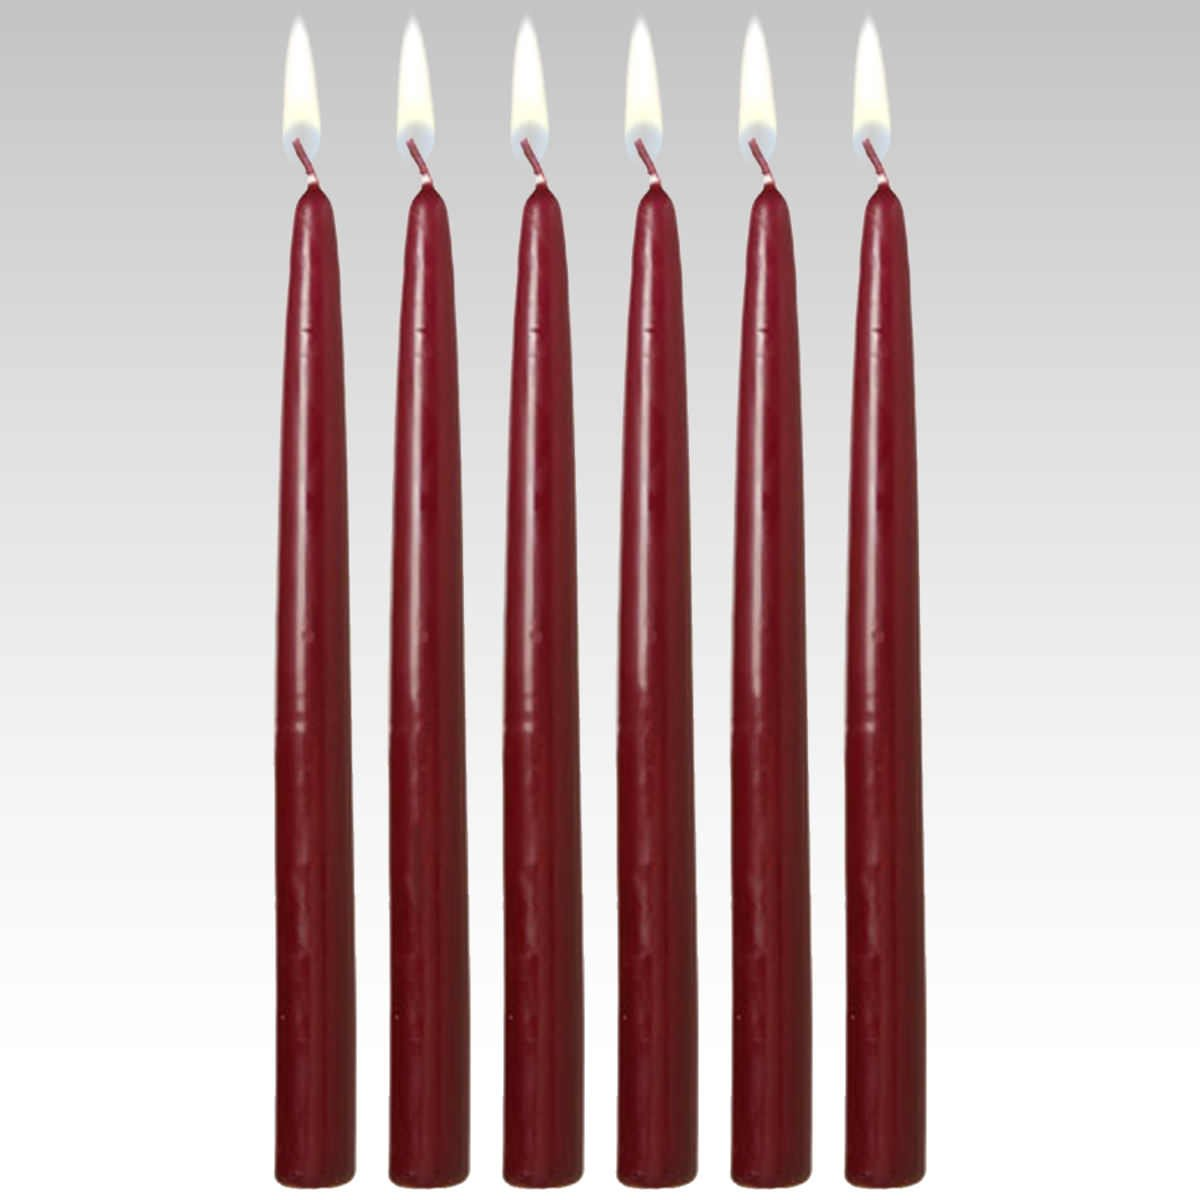 10'' Taper Candles (Set of 12) Burgundy Dripless and Smokeless Made in USA by Candles4Less